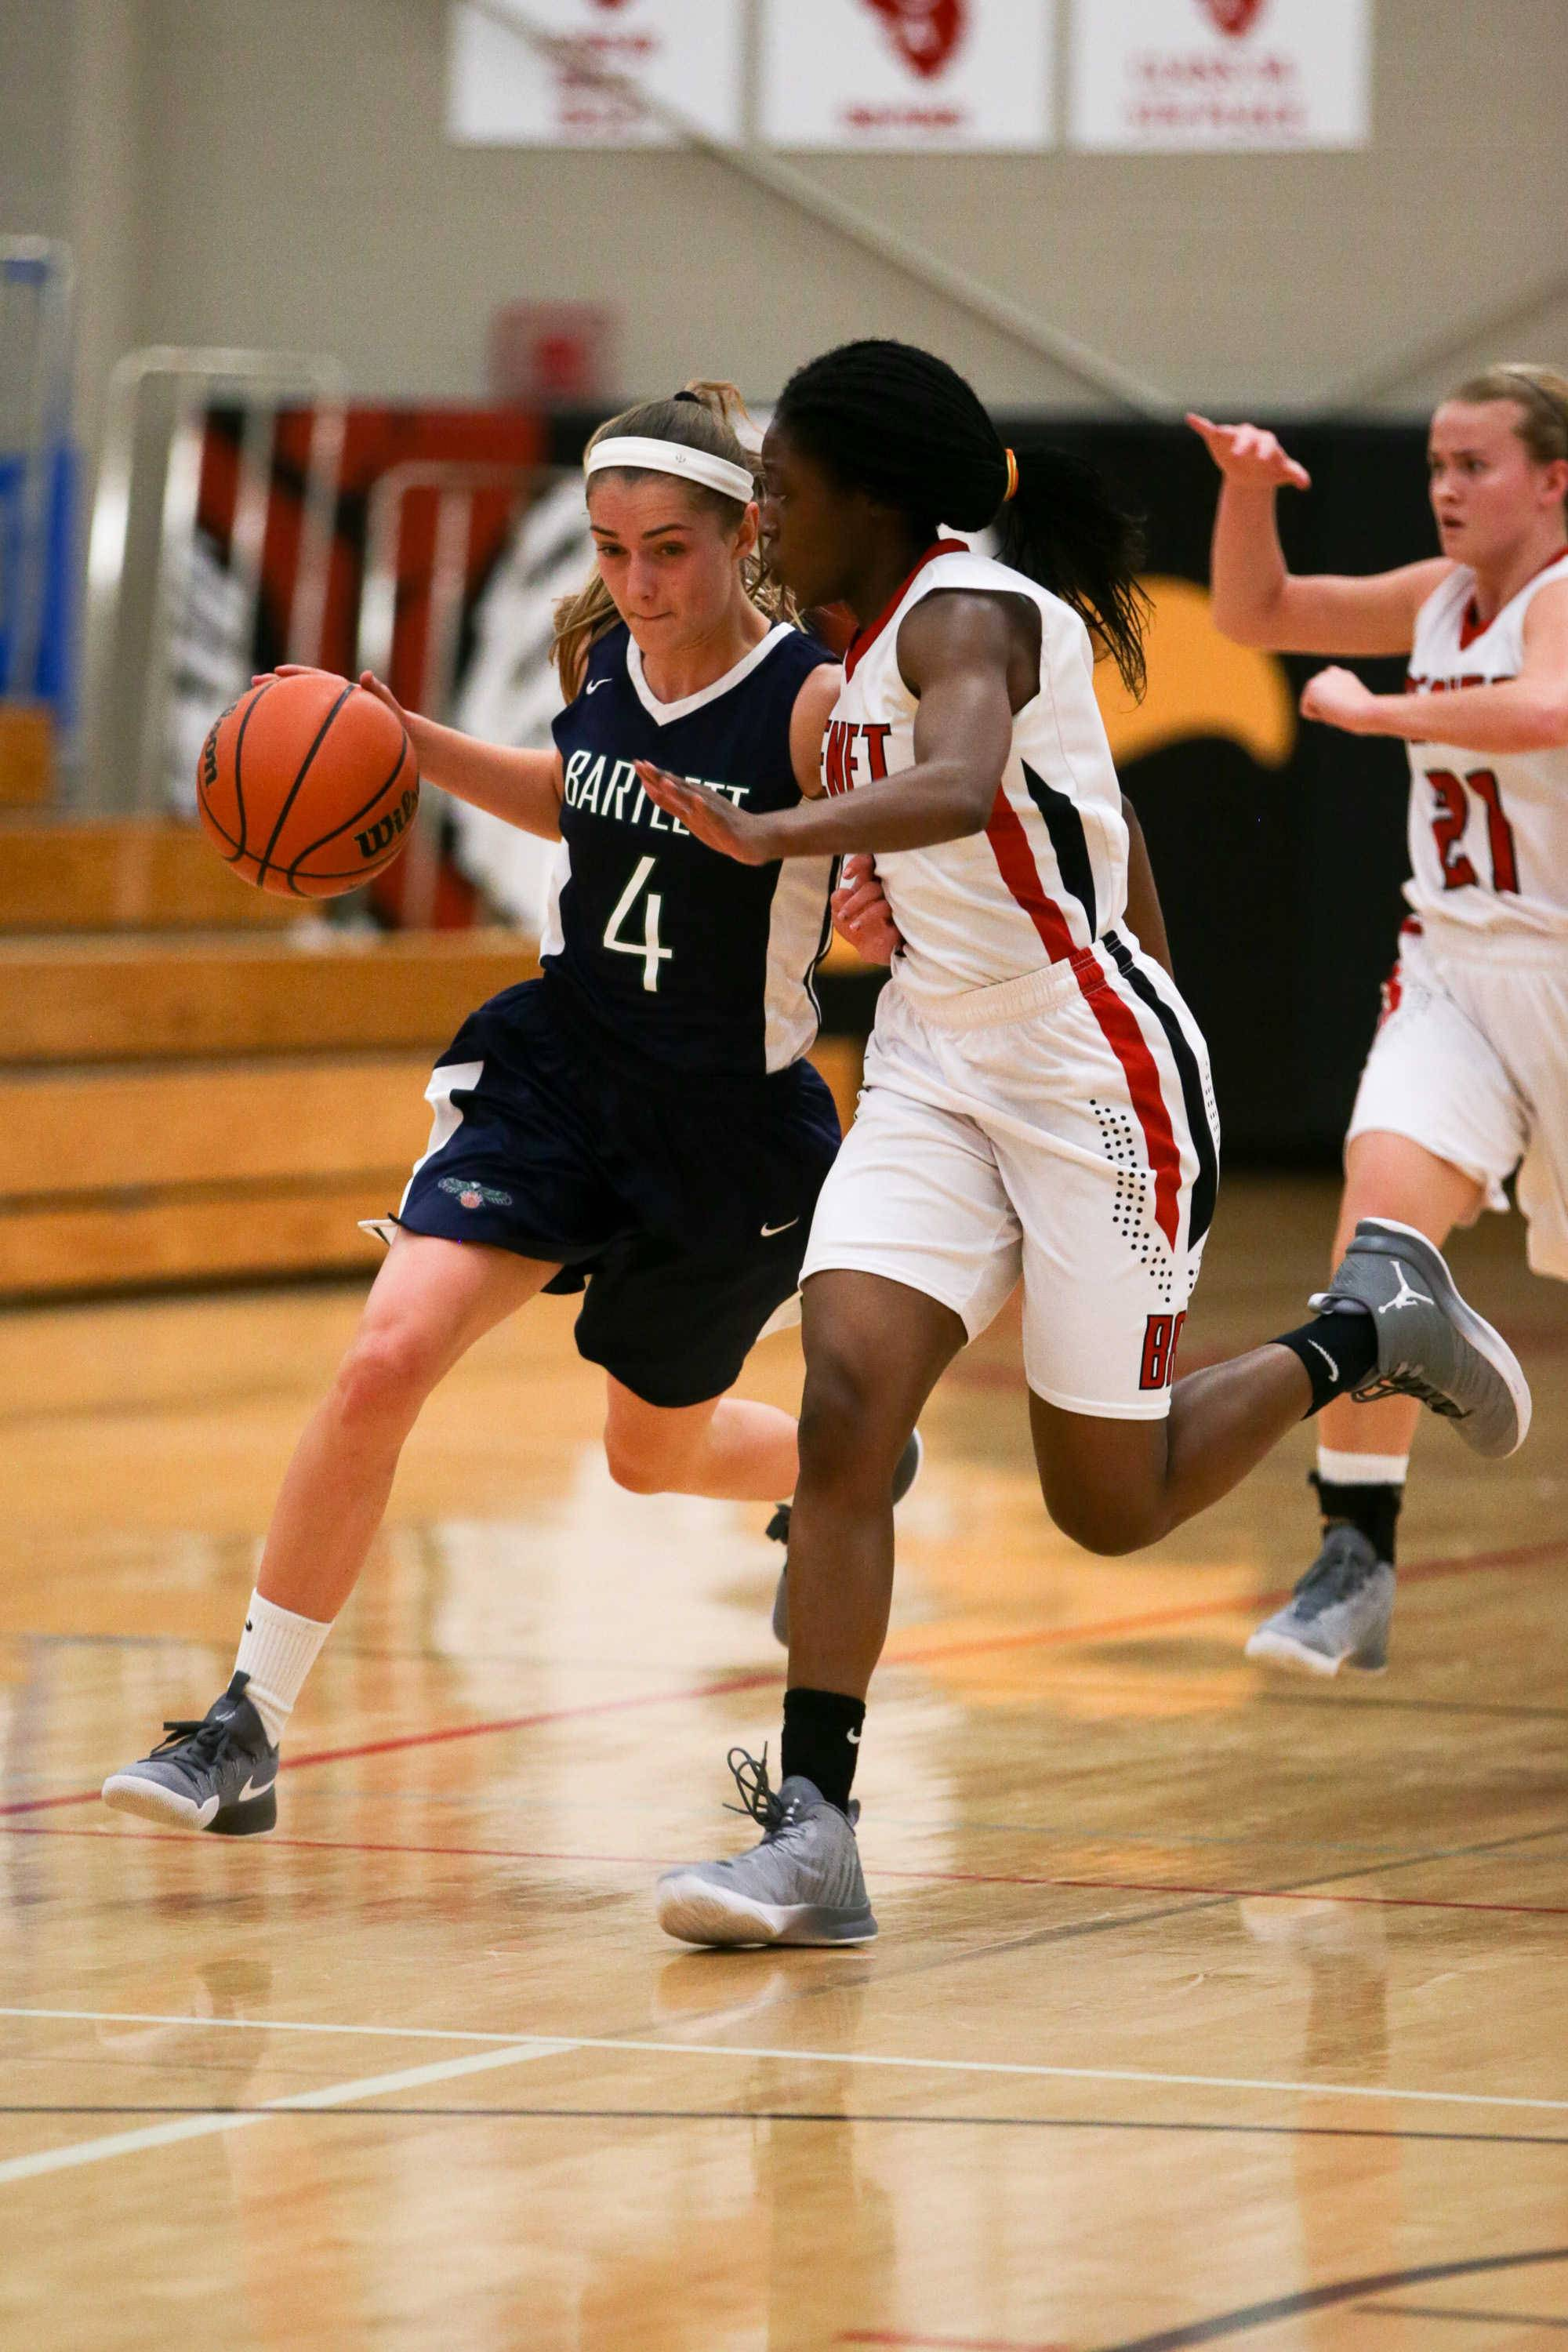 Bartlett guard Kayla Hare (4) drives to the hoop against Benet guard Tsimba Malonga (1) at Benet Academy in Lisle, IL on Friday, November 18, 2016